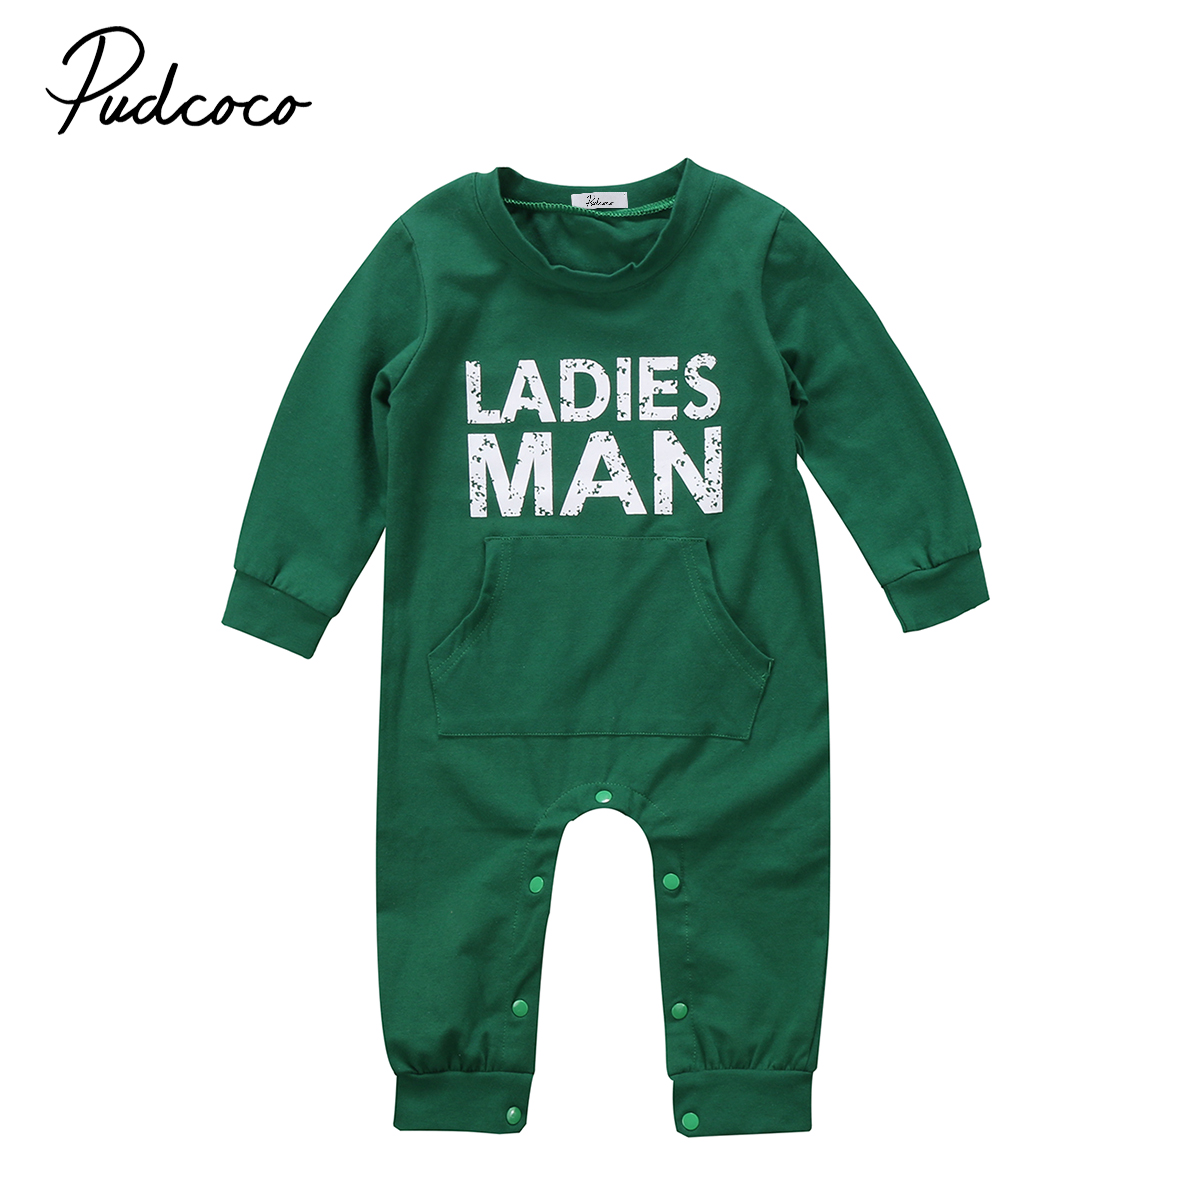 Pudcoco 2017 Baby Kids Boy Clothes Long Sleeve Romper Jumpsuit Outfits Fashion Autumn Warm Baby boy Cute Romper